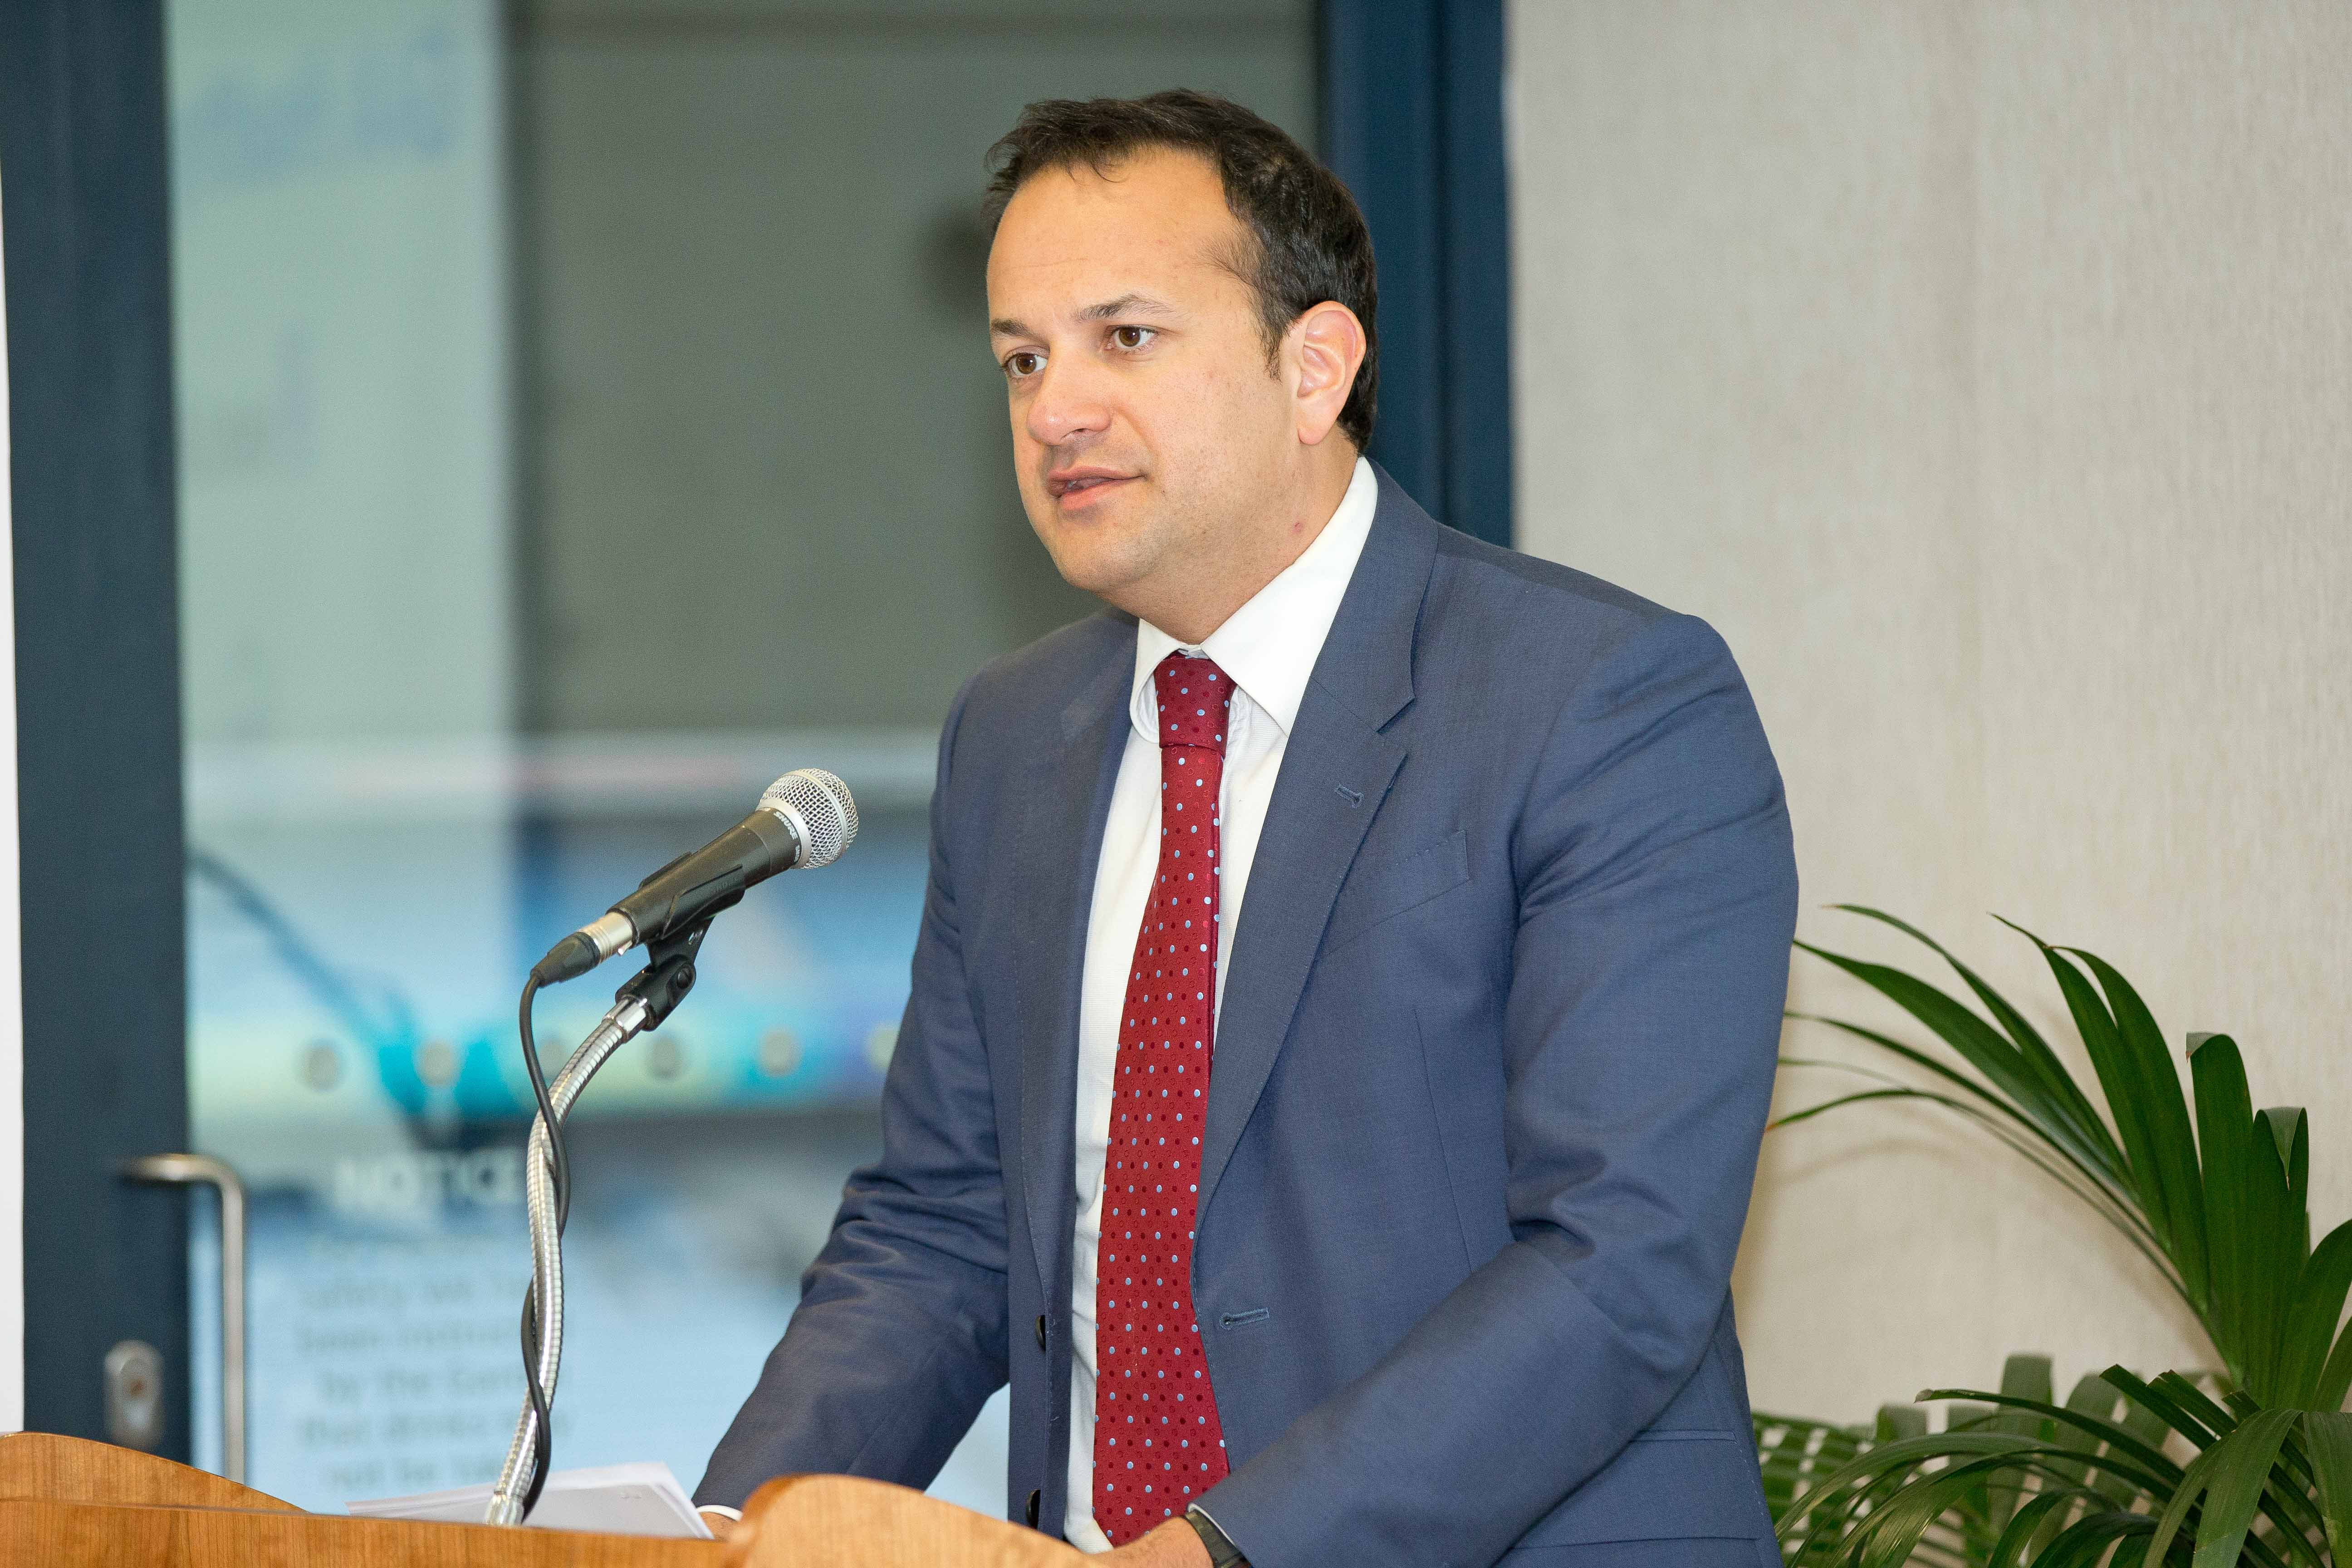 Varadkar hopes personal life will not feature in leadership contest